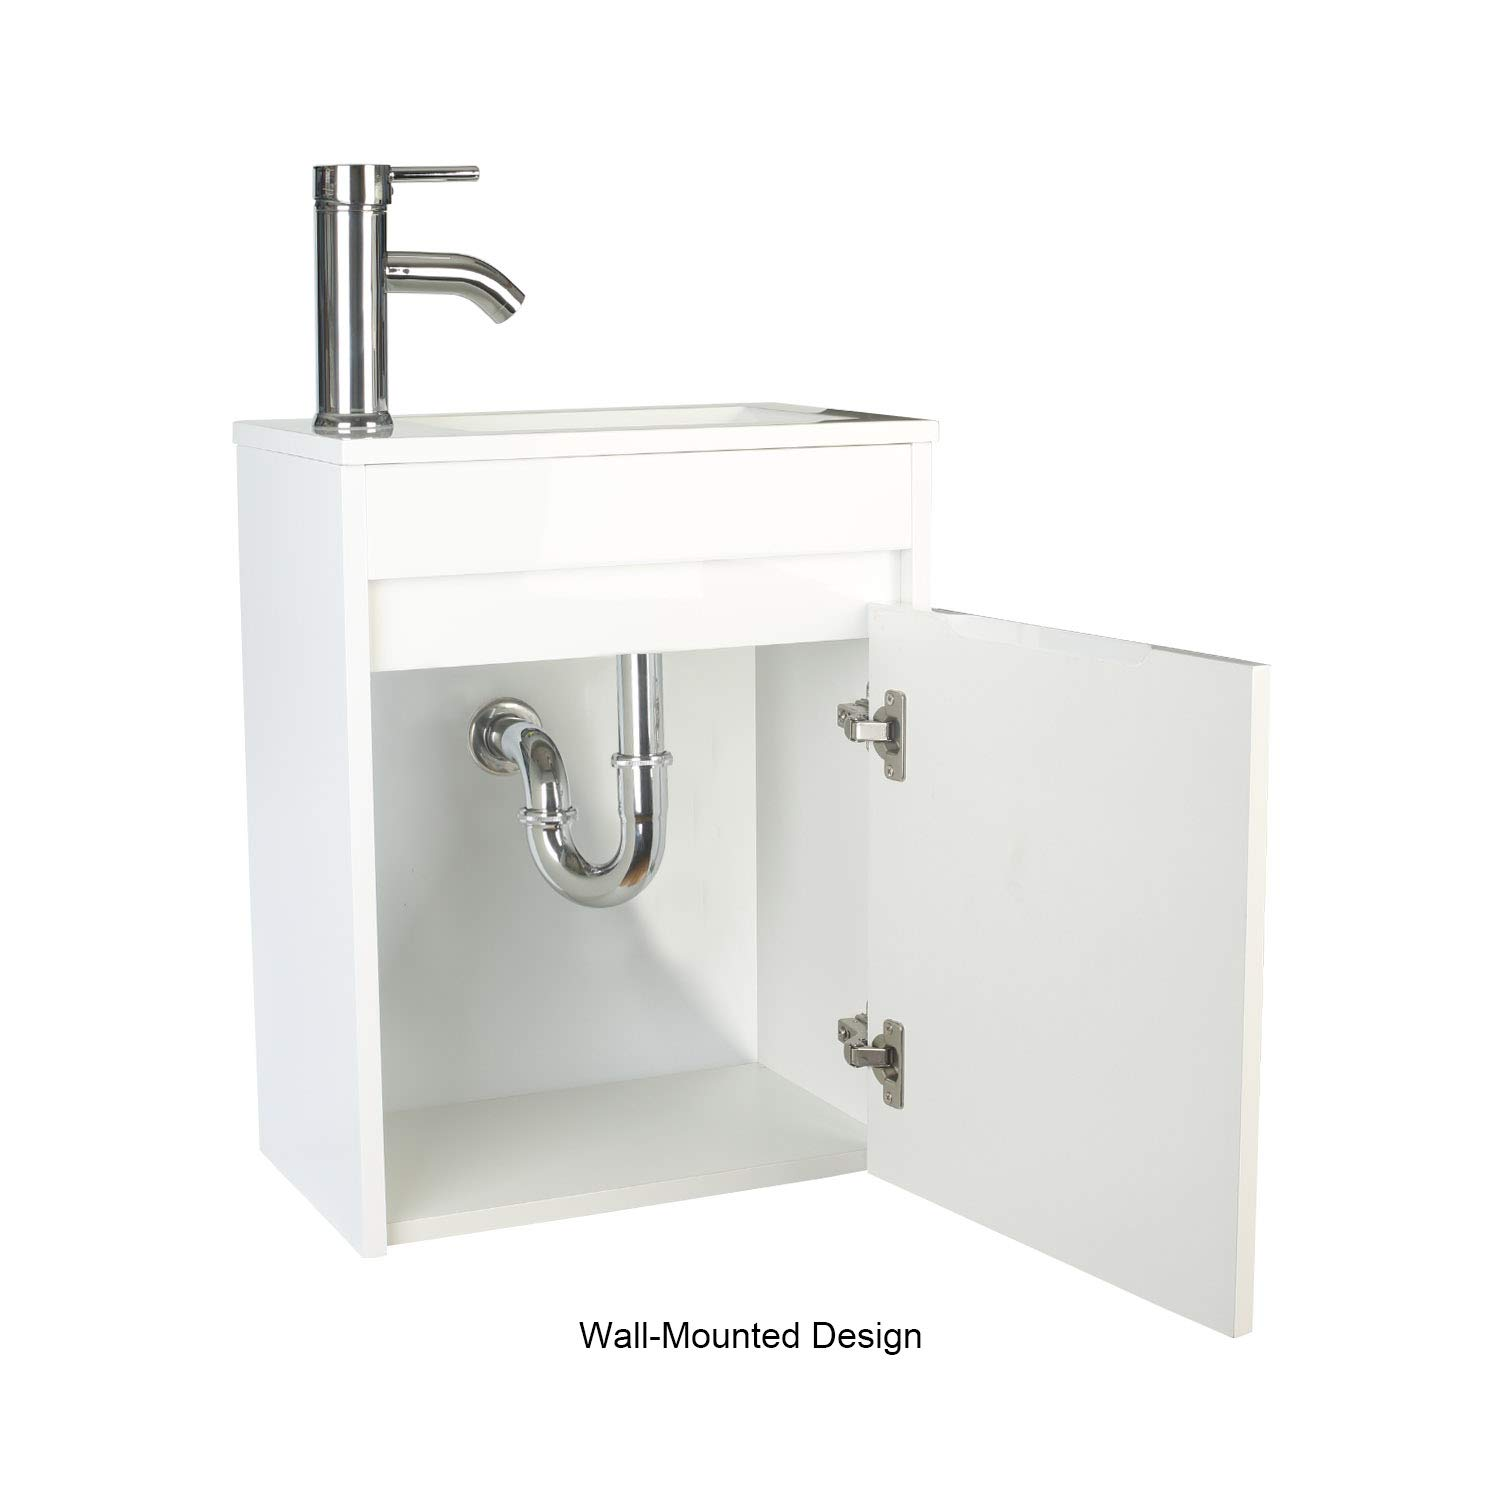 . eclife Bathroom Vanity W Sink Combo  16  for Small Space MDF Paint Modern  Design White Wall Mounted Cabinet Set  White Resin Basin Sink Top  Chrome